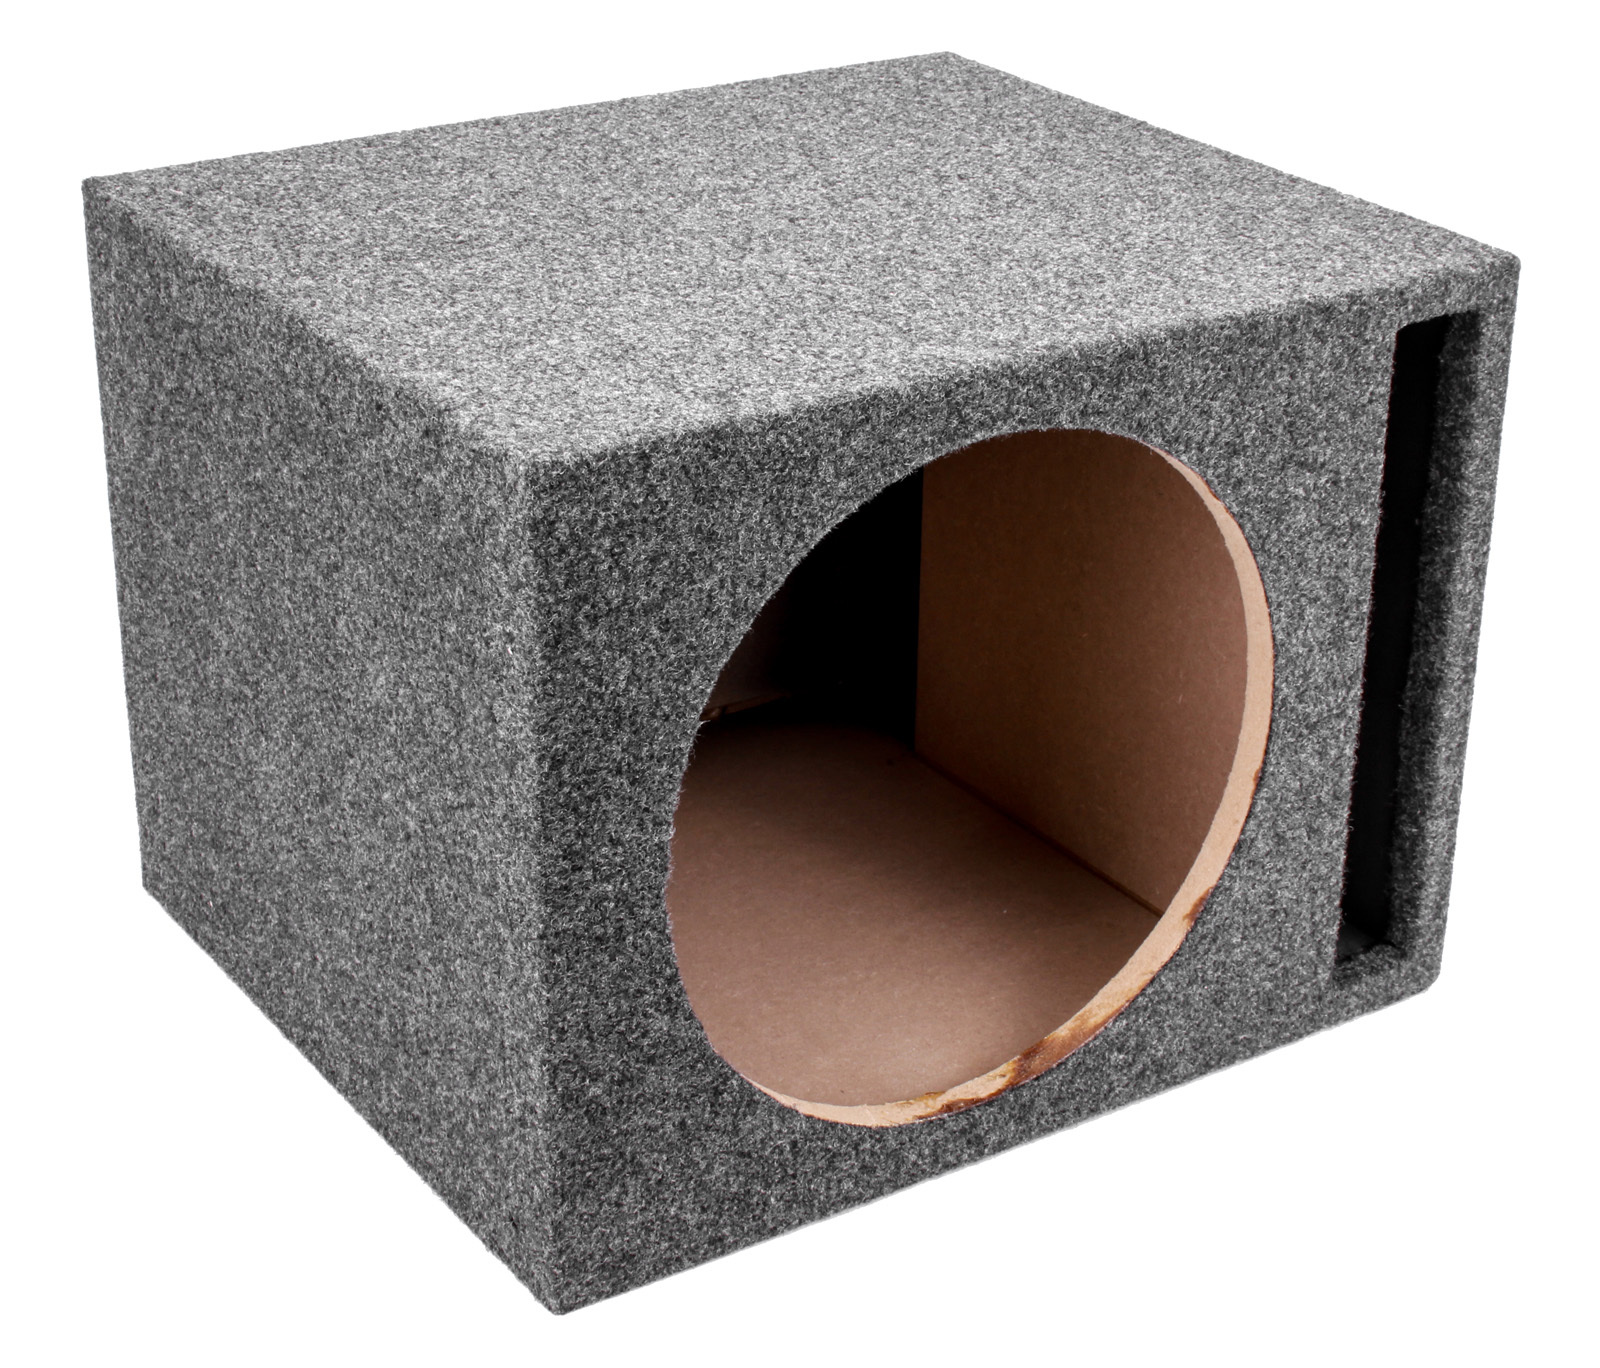 Ported Single Subwoofer Boxes